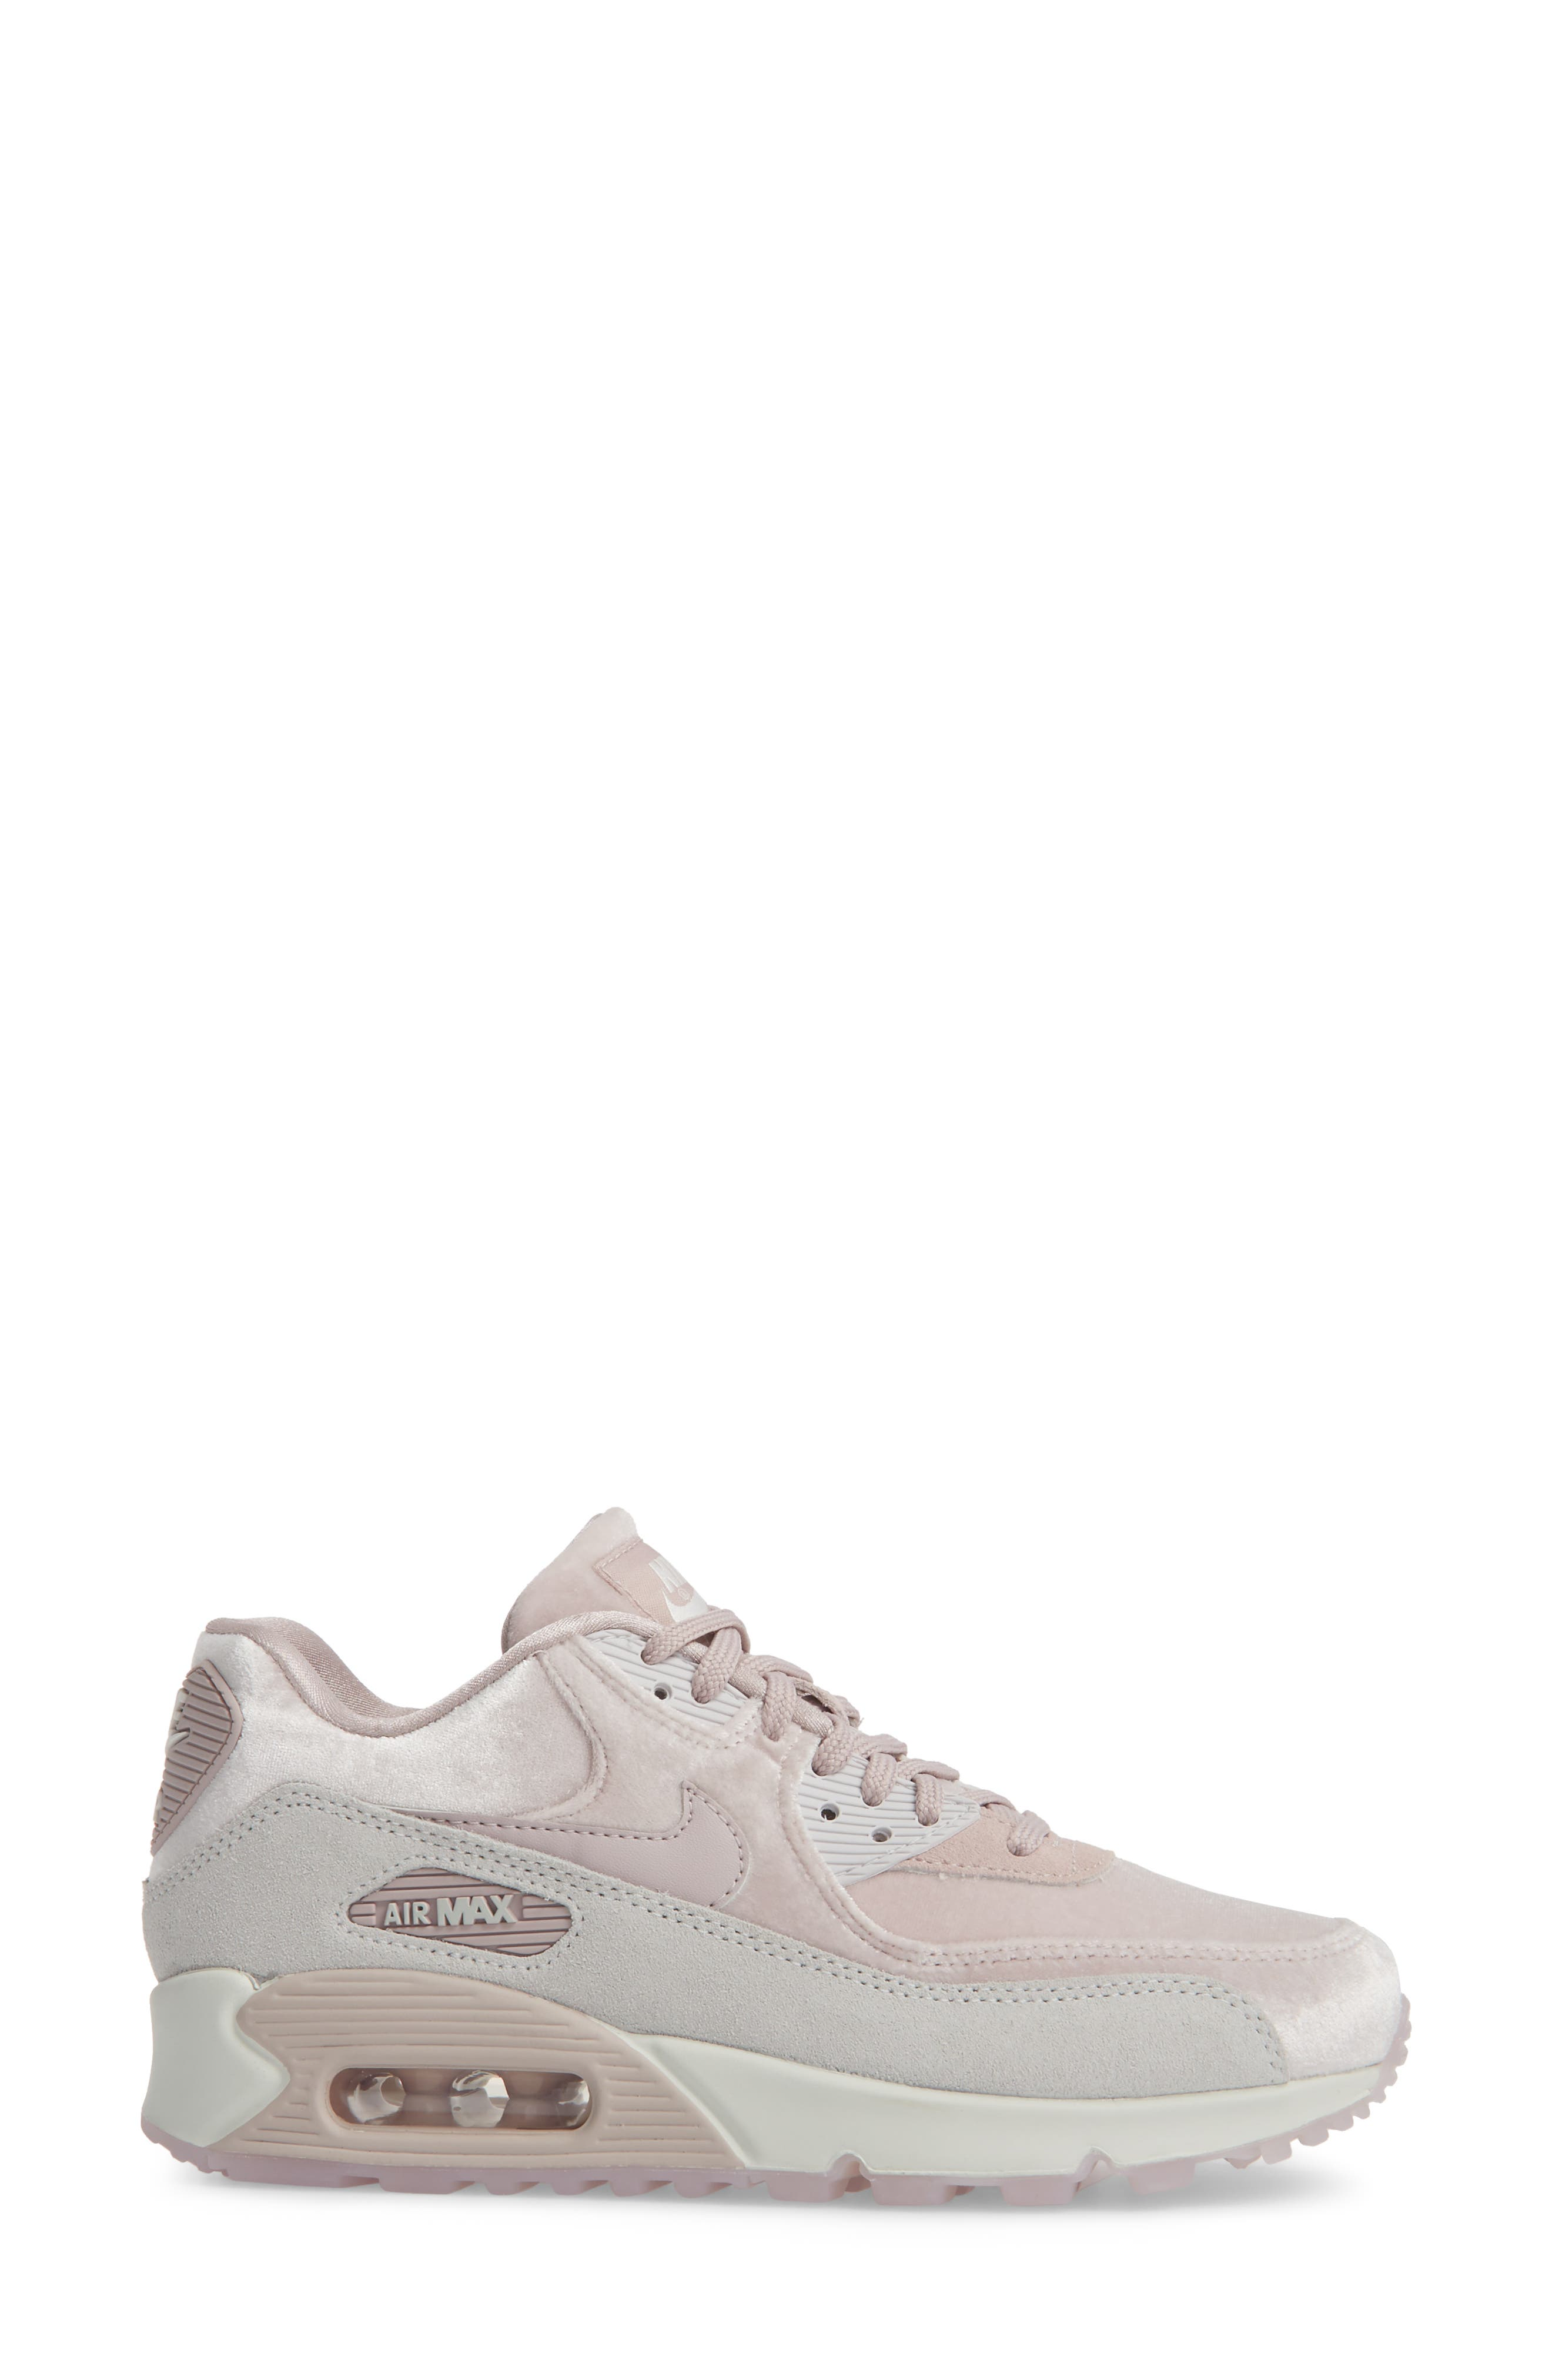 Air Max 90 LX Sneaker,                             Alternate thumbnail 3, color,                             Particle Rose/ Particle Rose